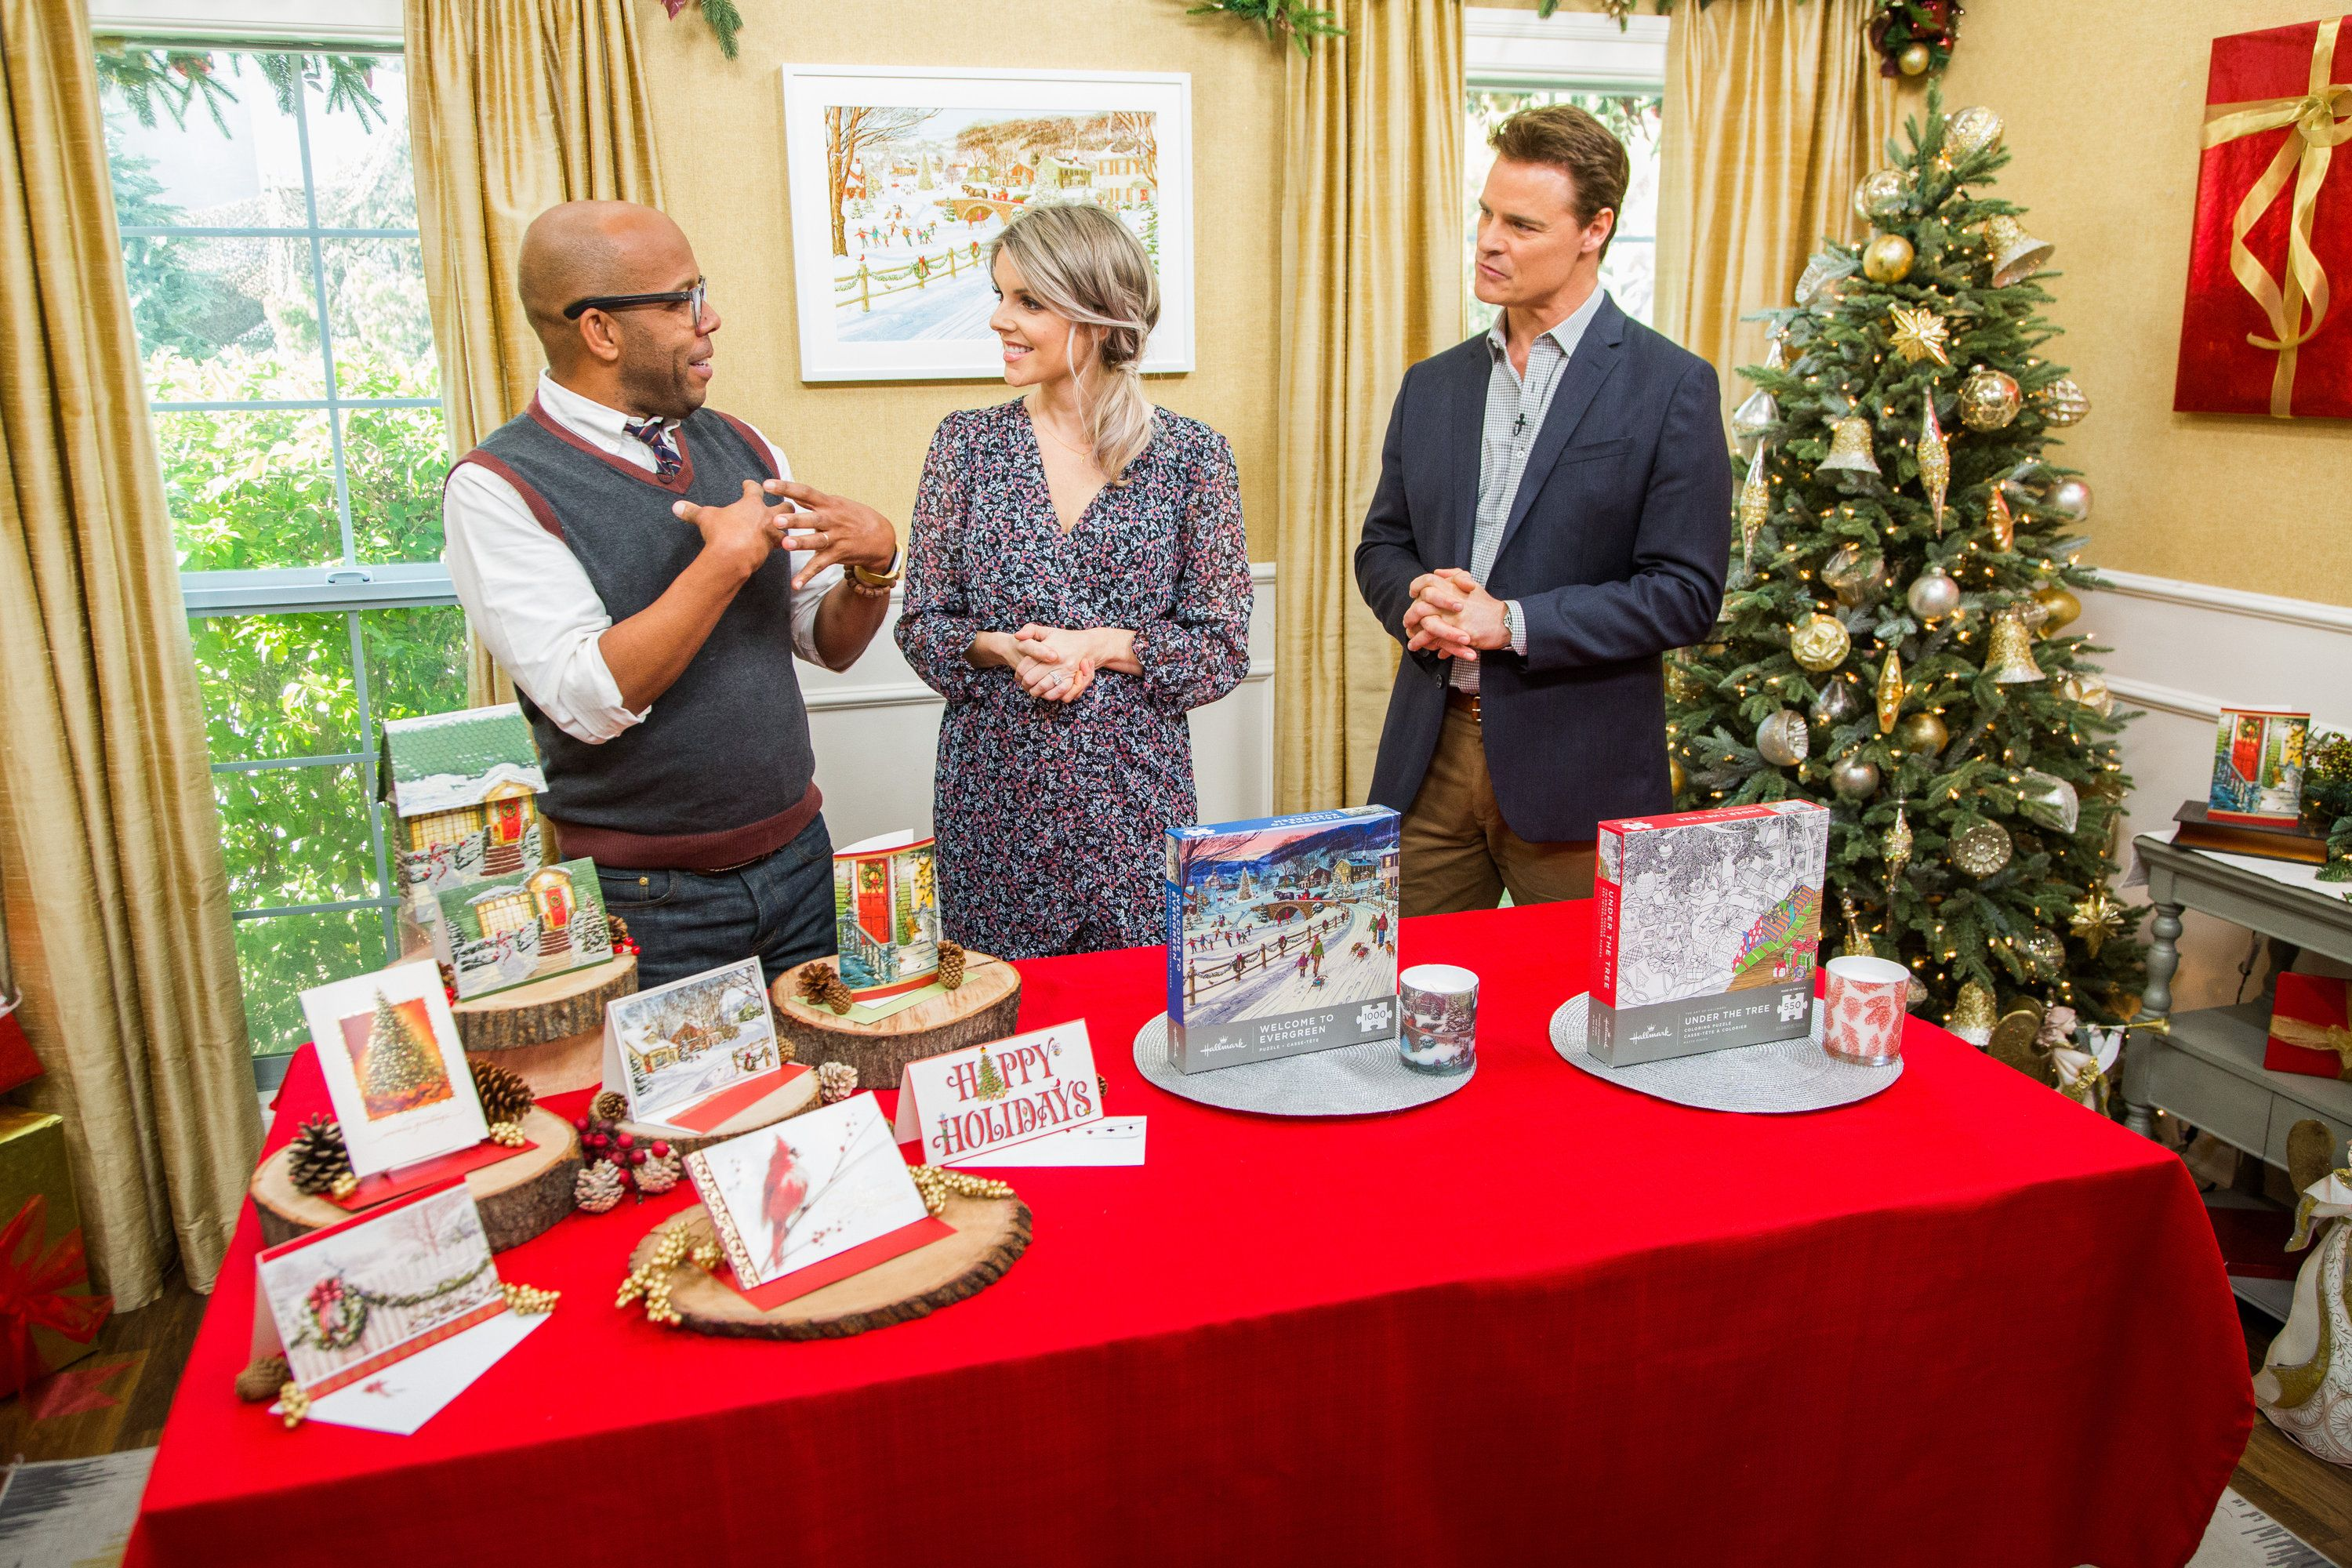 DIY Evergreen Christmas Silhouette (Part 1) - Home & Family - Video | Hallmark Channel | Family ...